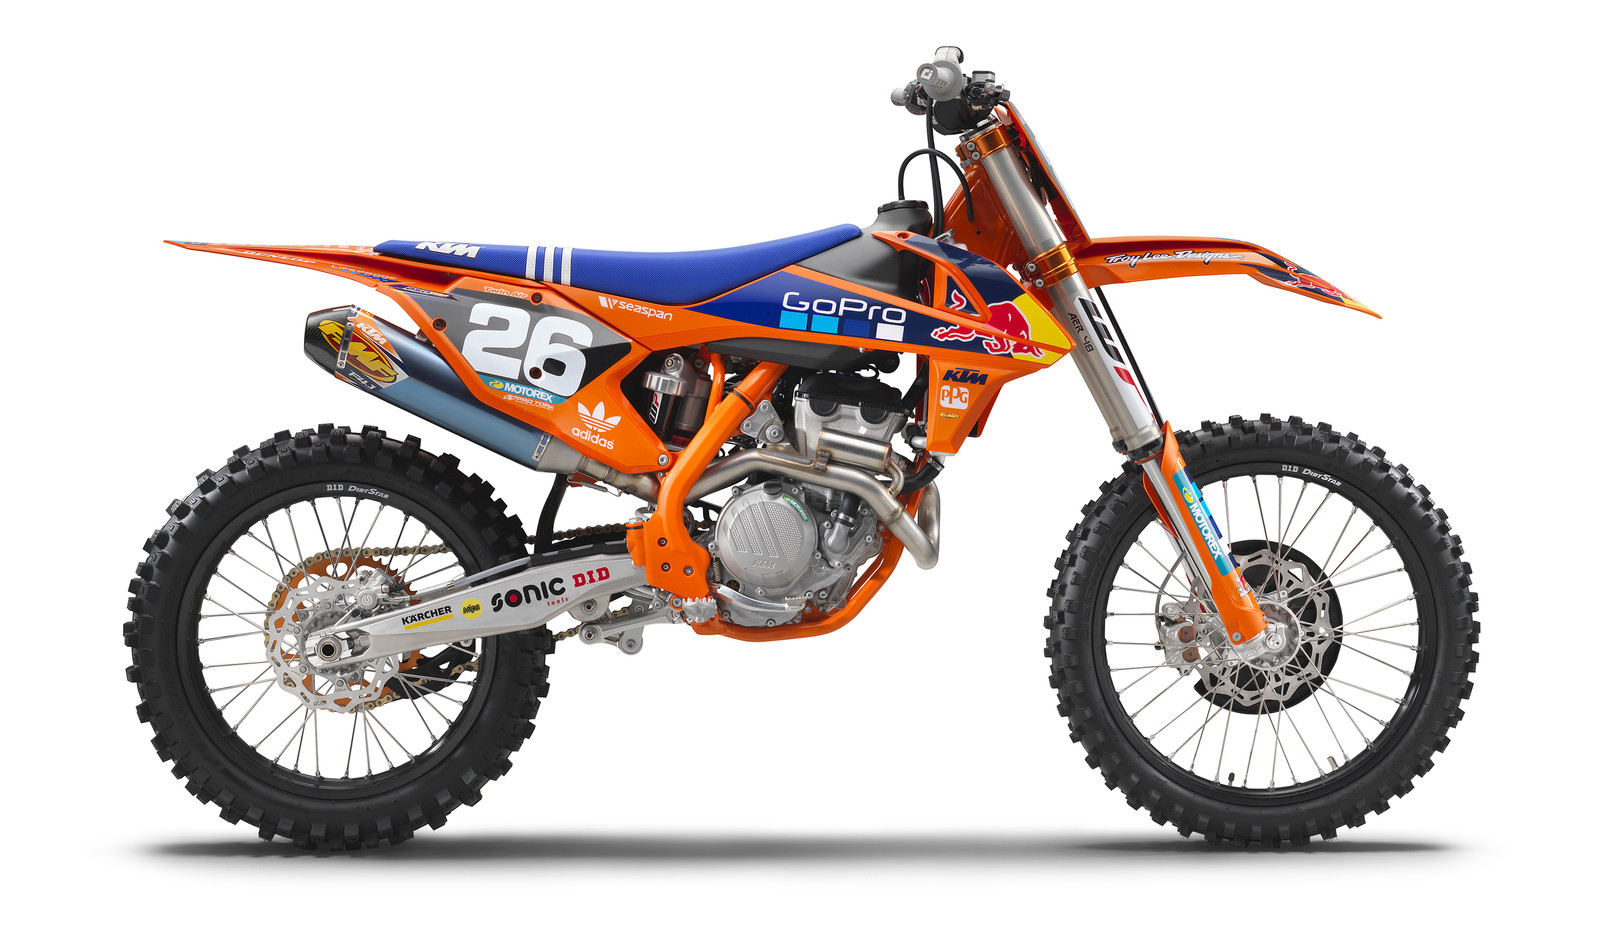 2017 KTM 250 SX-F FACTORY EDITION  - First Look: 2017 KTM Factory Edition 450 SX-F & 250 SX-F - Motocross Pictures - Vital MX